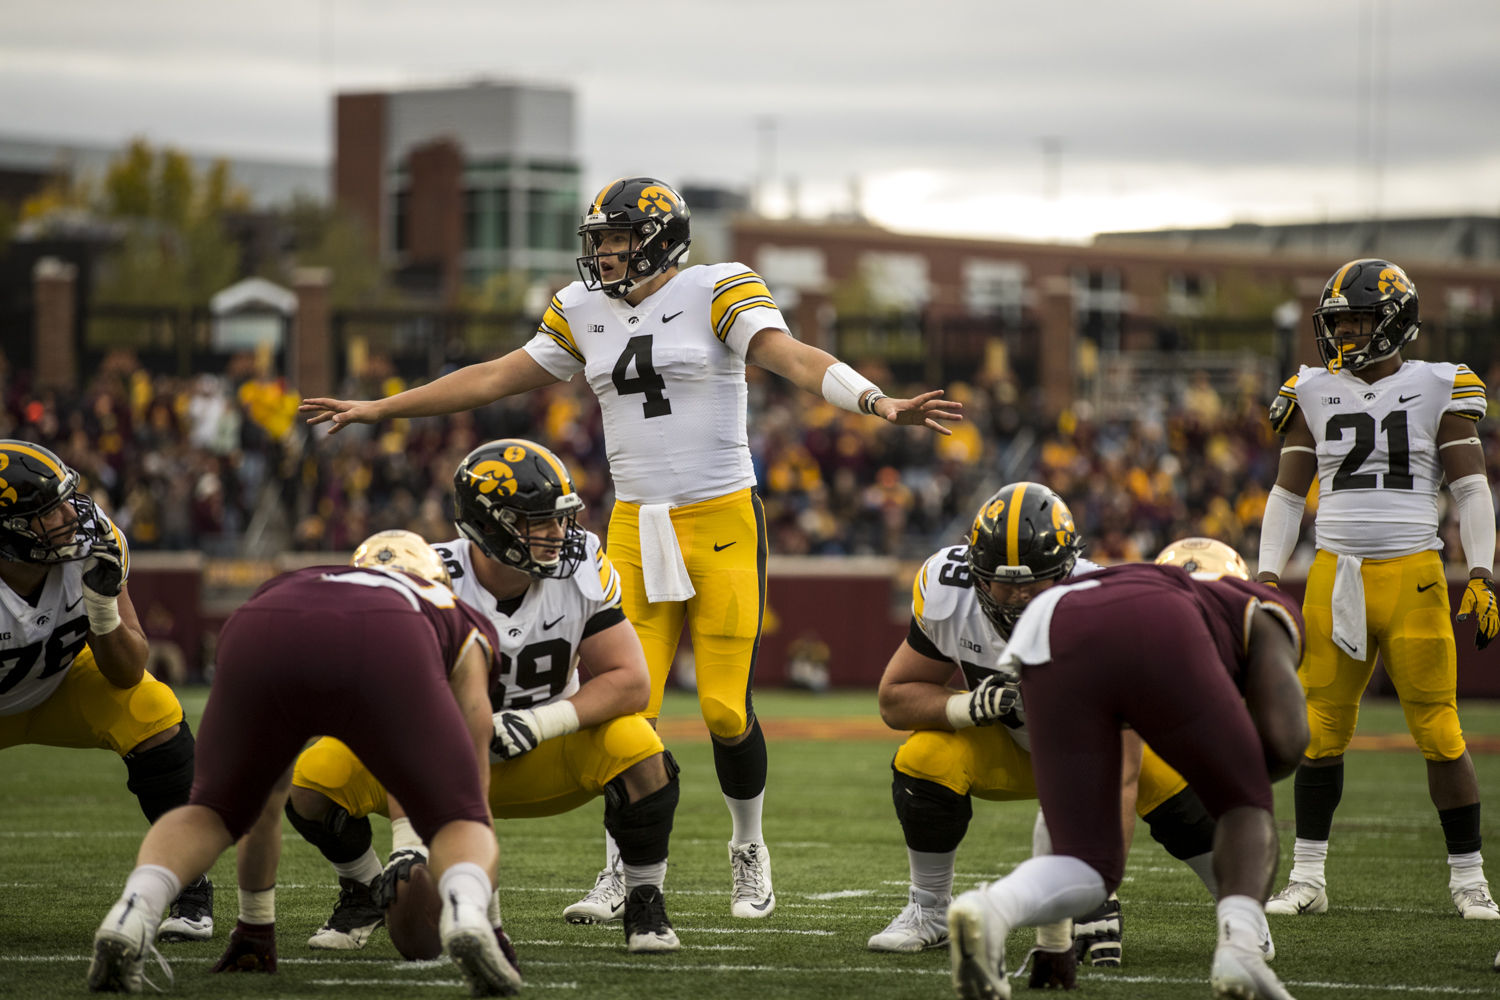 Iowa+quarterback+Nate+Stanley+calls+an+audible+during+Iowa%27s+game+against+Minnesota+at+TCF+Bank+Stadium+on+Saturday%2C+October+6%2C+2018.+The+Hawkeyes+defeated+the+Golden+Gophers+48-31.